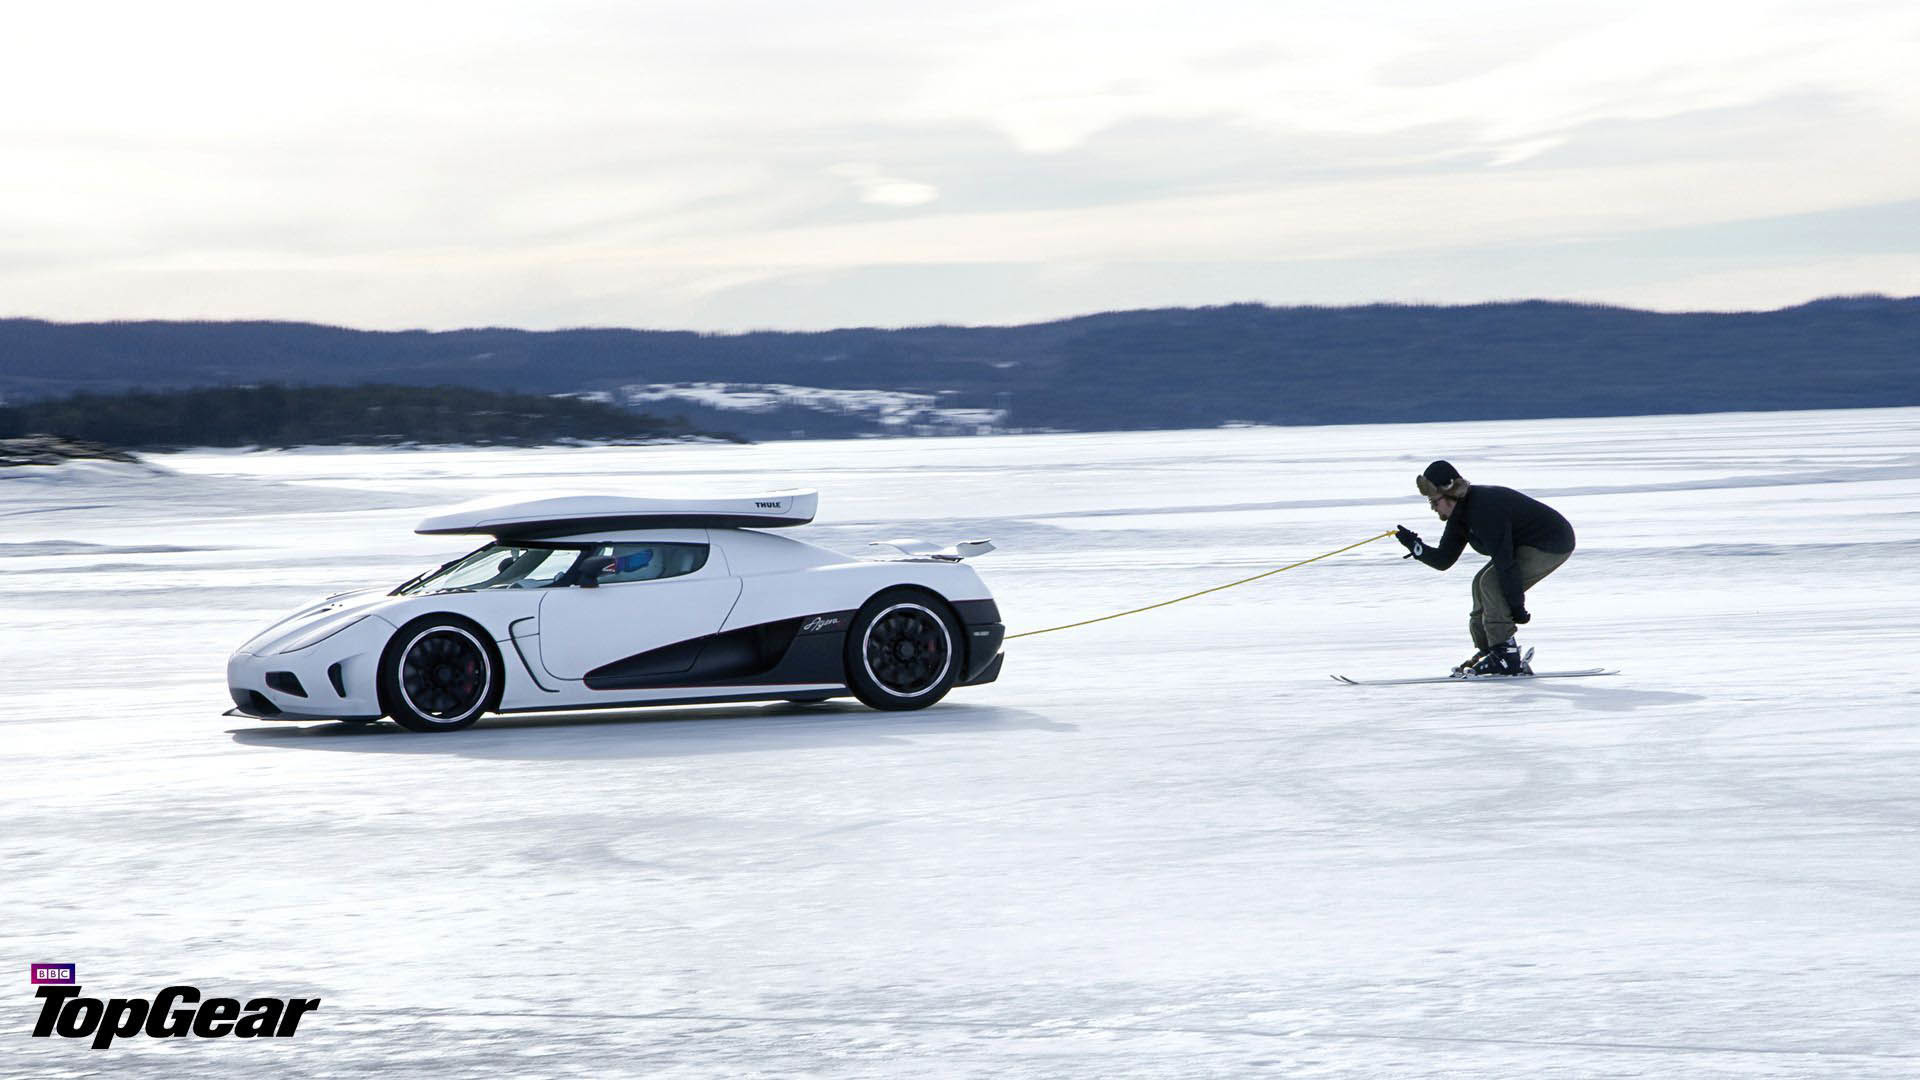 1920x1080 Amazing Skiing with the Koenigsegg Agera R  wallpaper